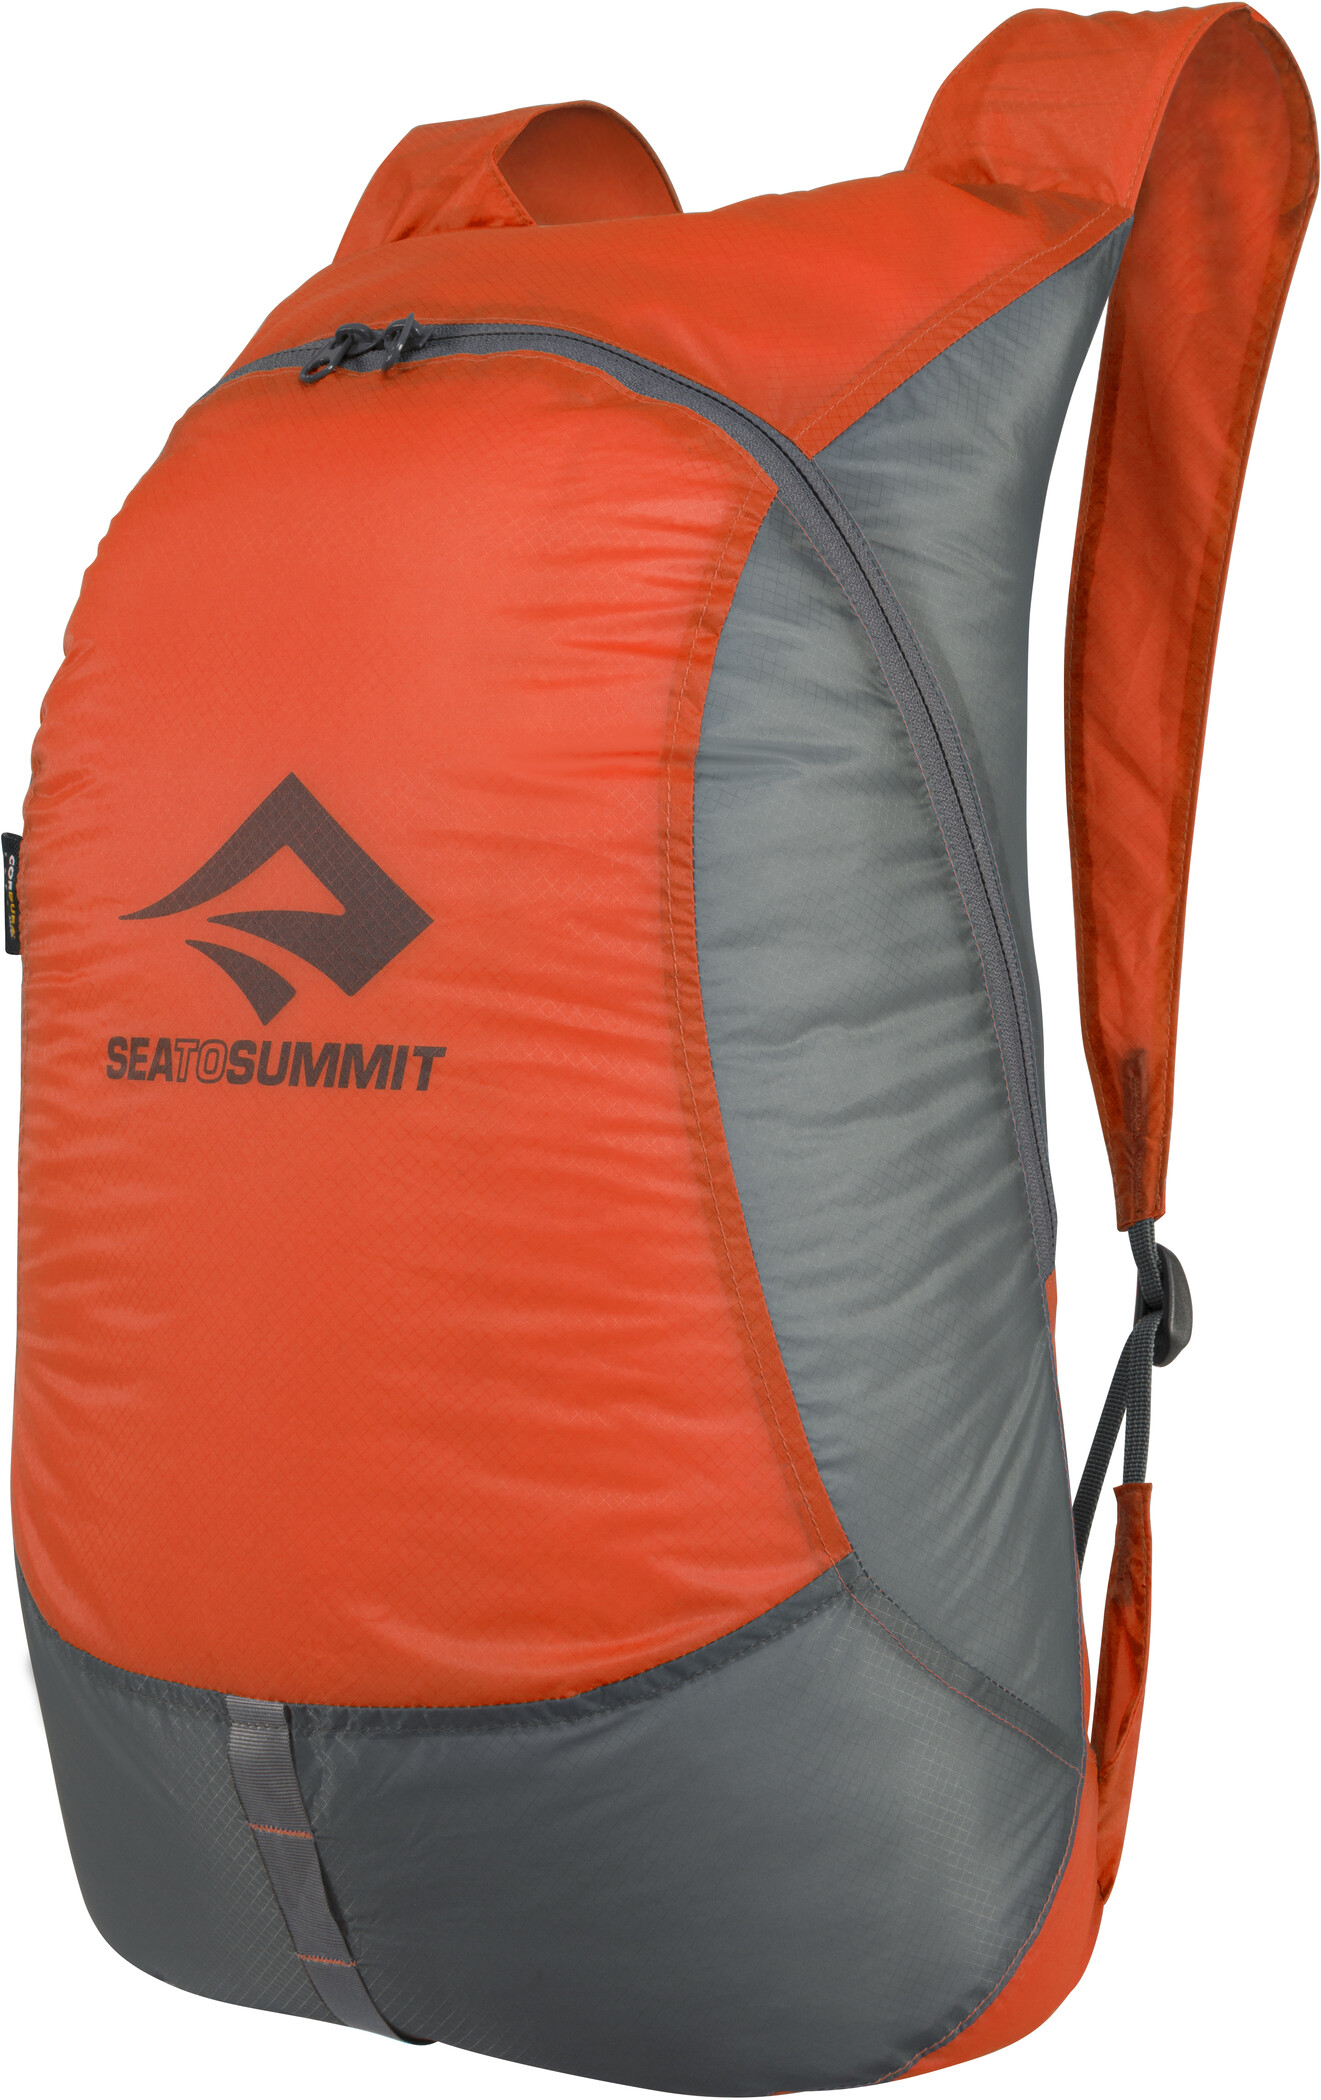 Sea to Summit Ultra-Sil Rygsæk, orange (2019) | Travel bags